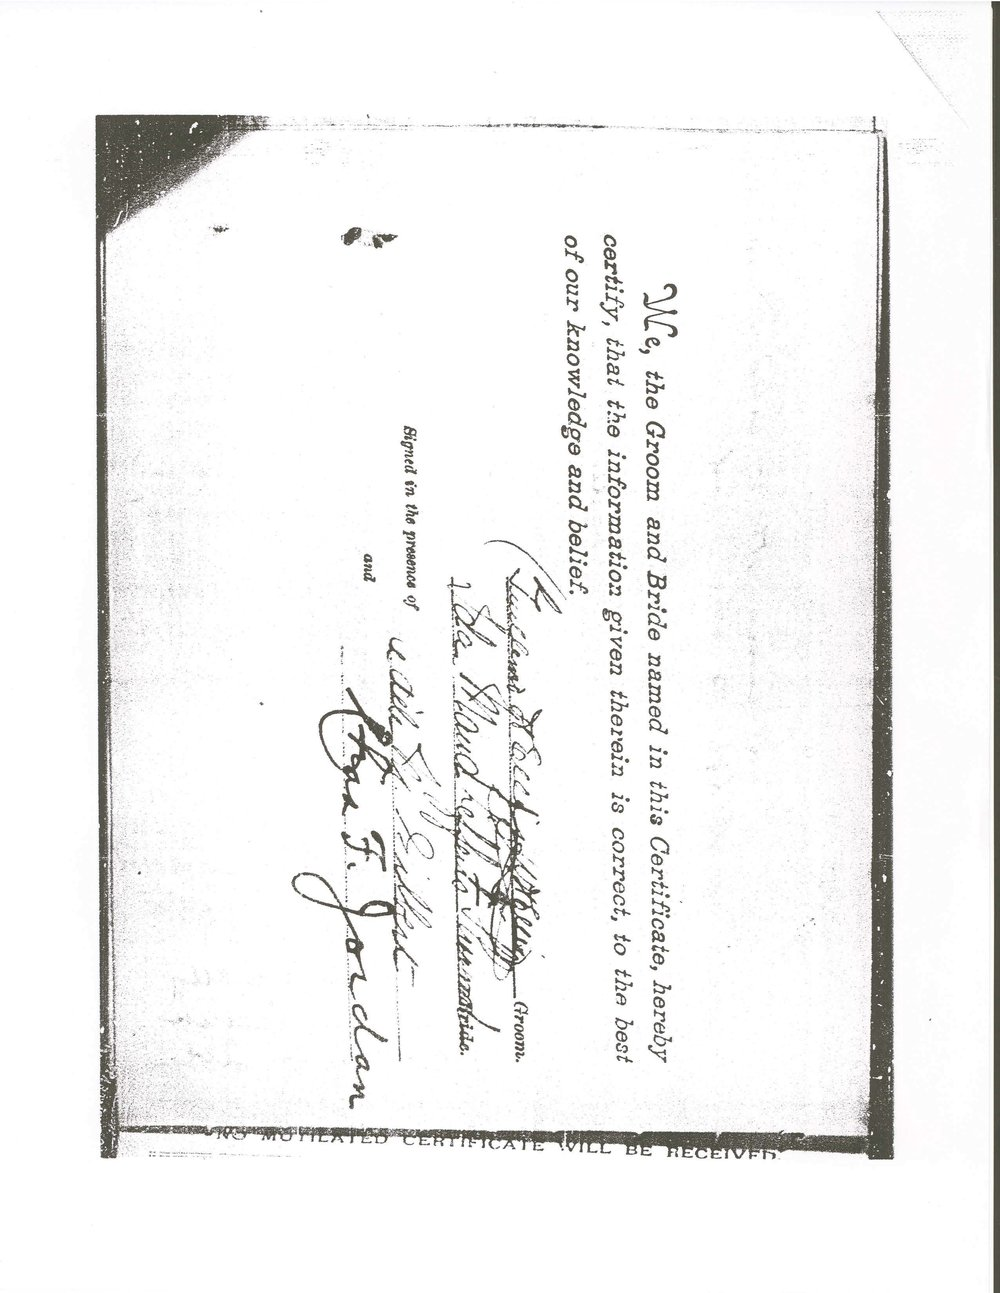 Marriage Certificate, 1903